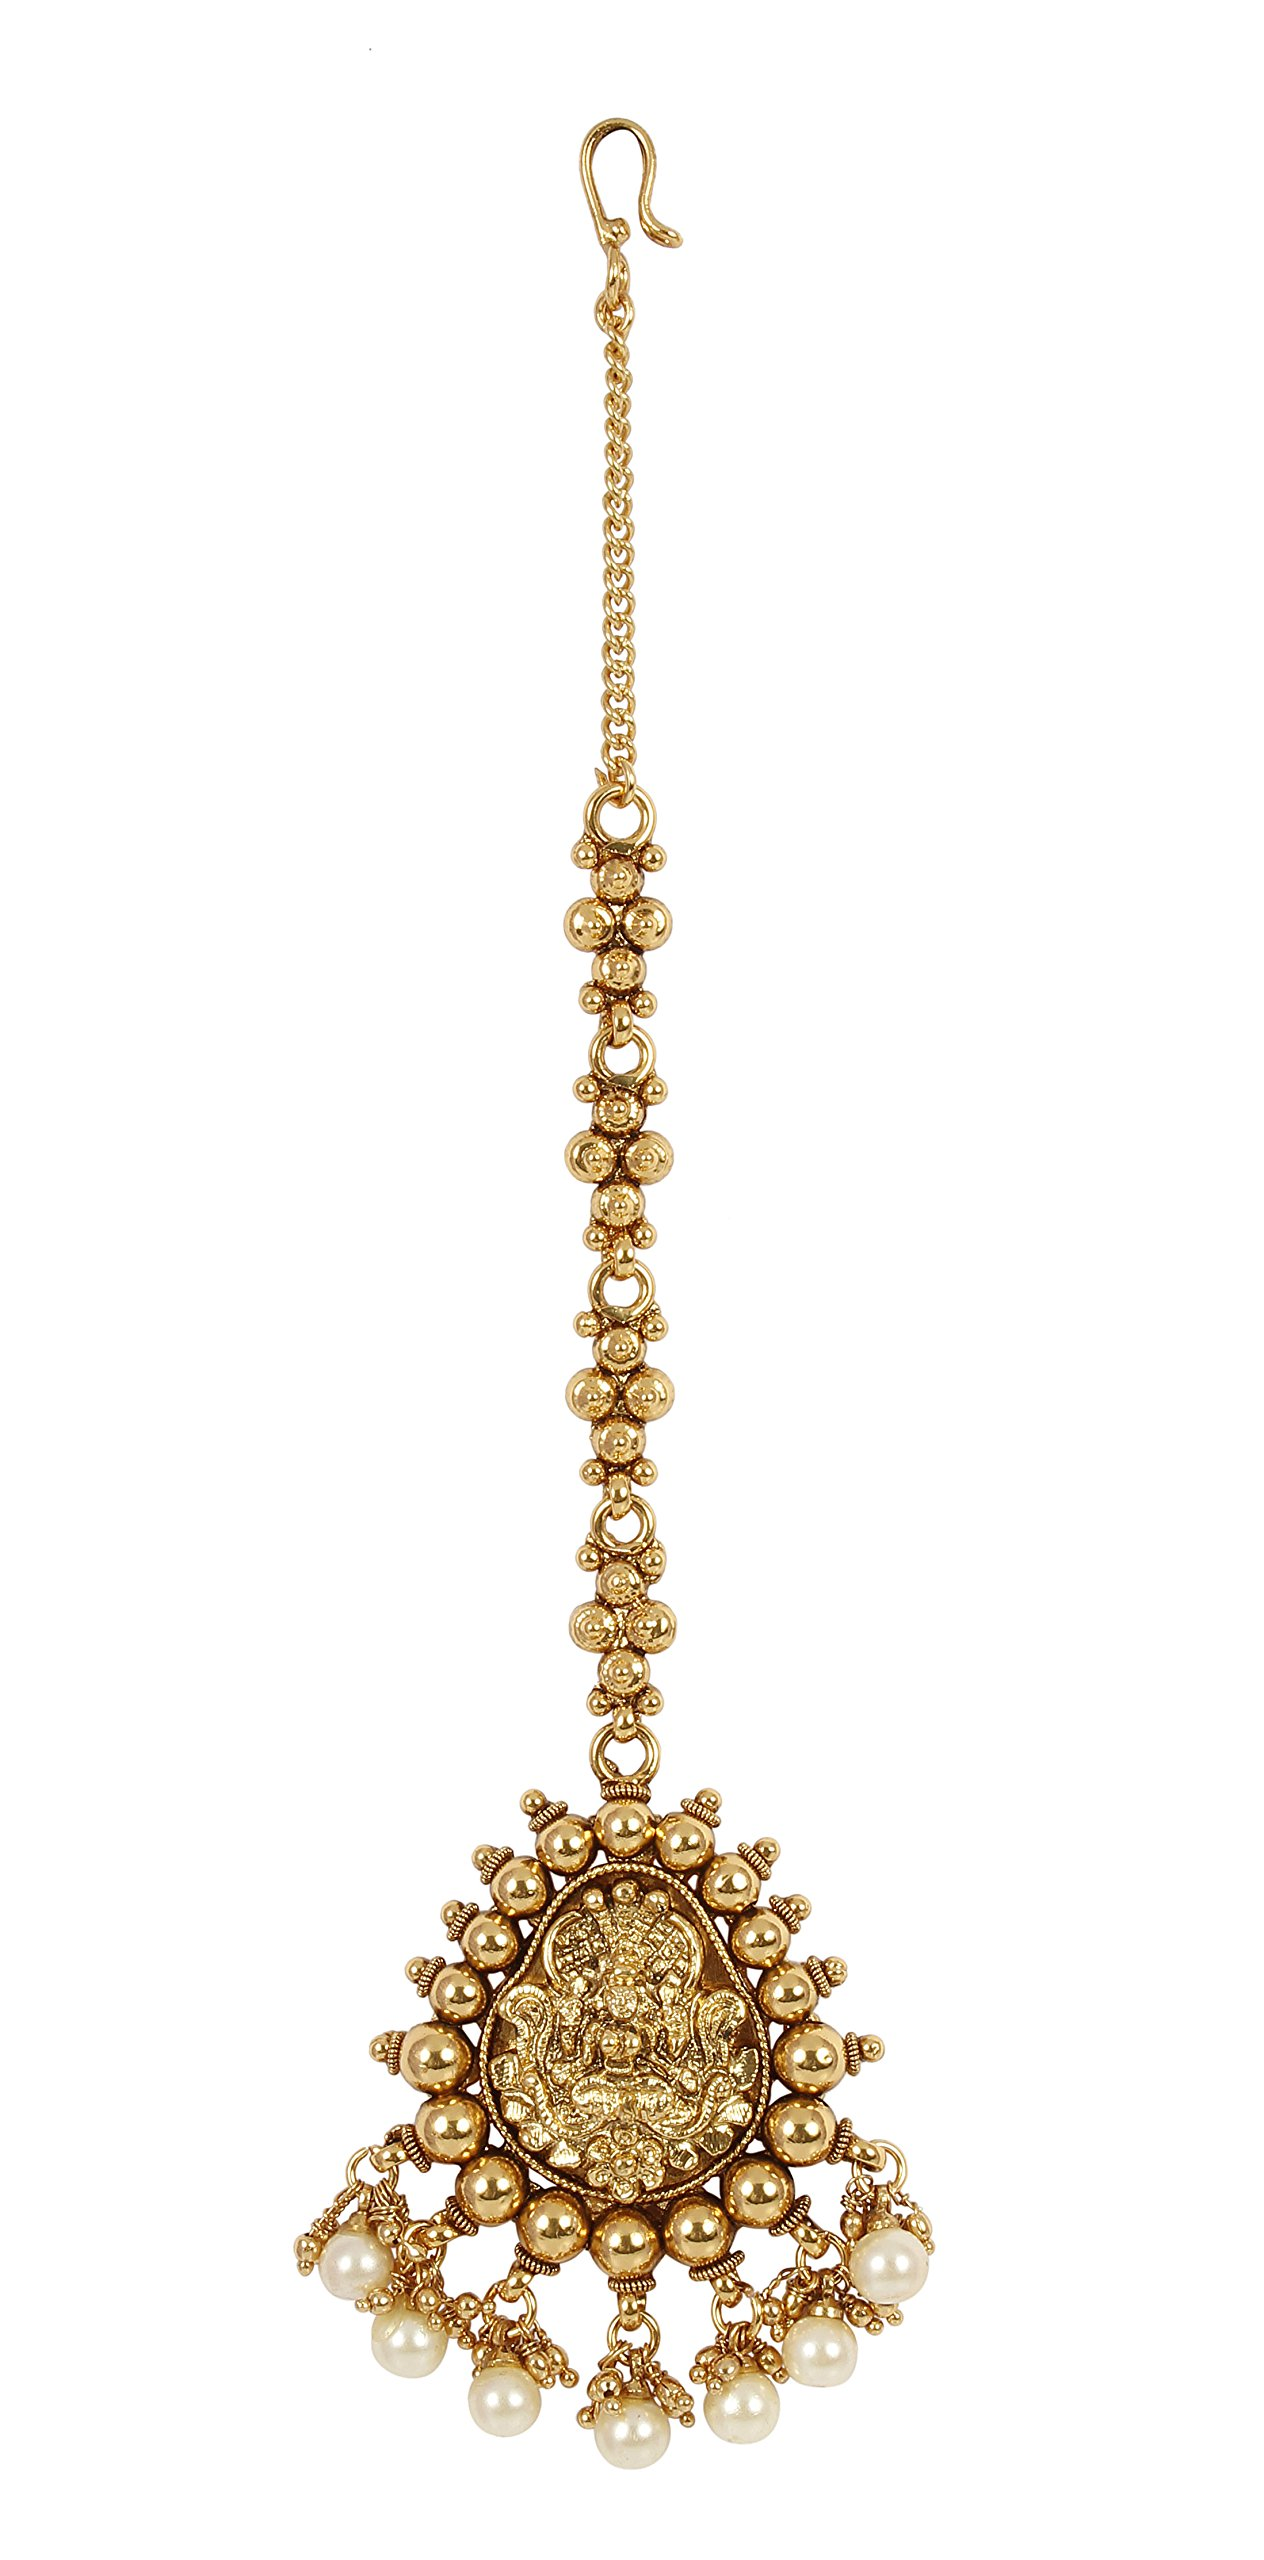 MUCH-MORE Indian Fabulous Style Partywear Maang Tikka Forehead Traditional Jewelry (2326)